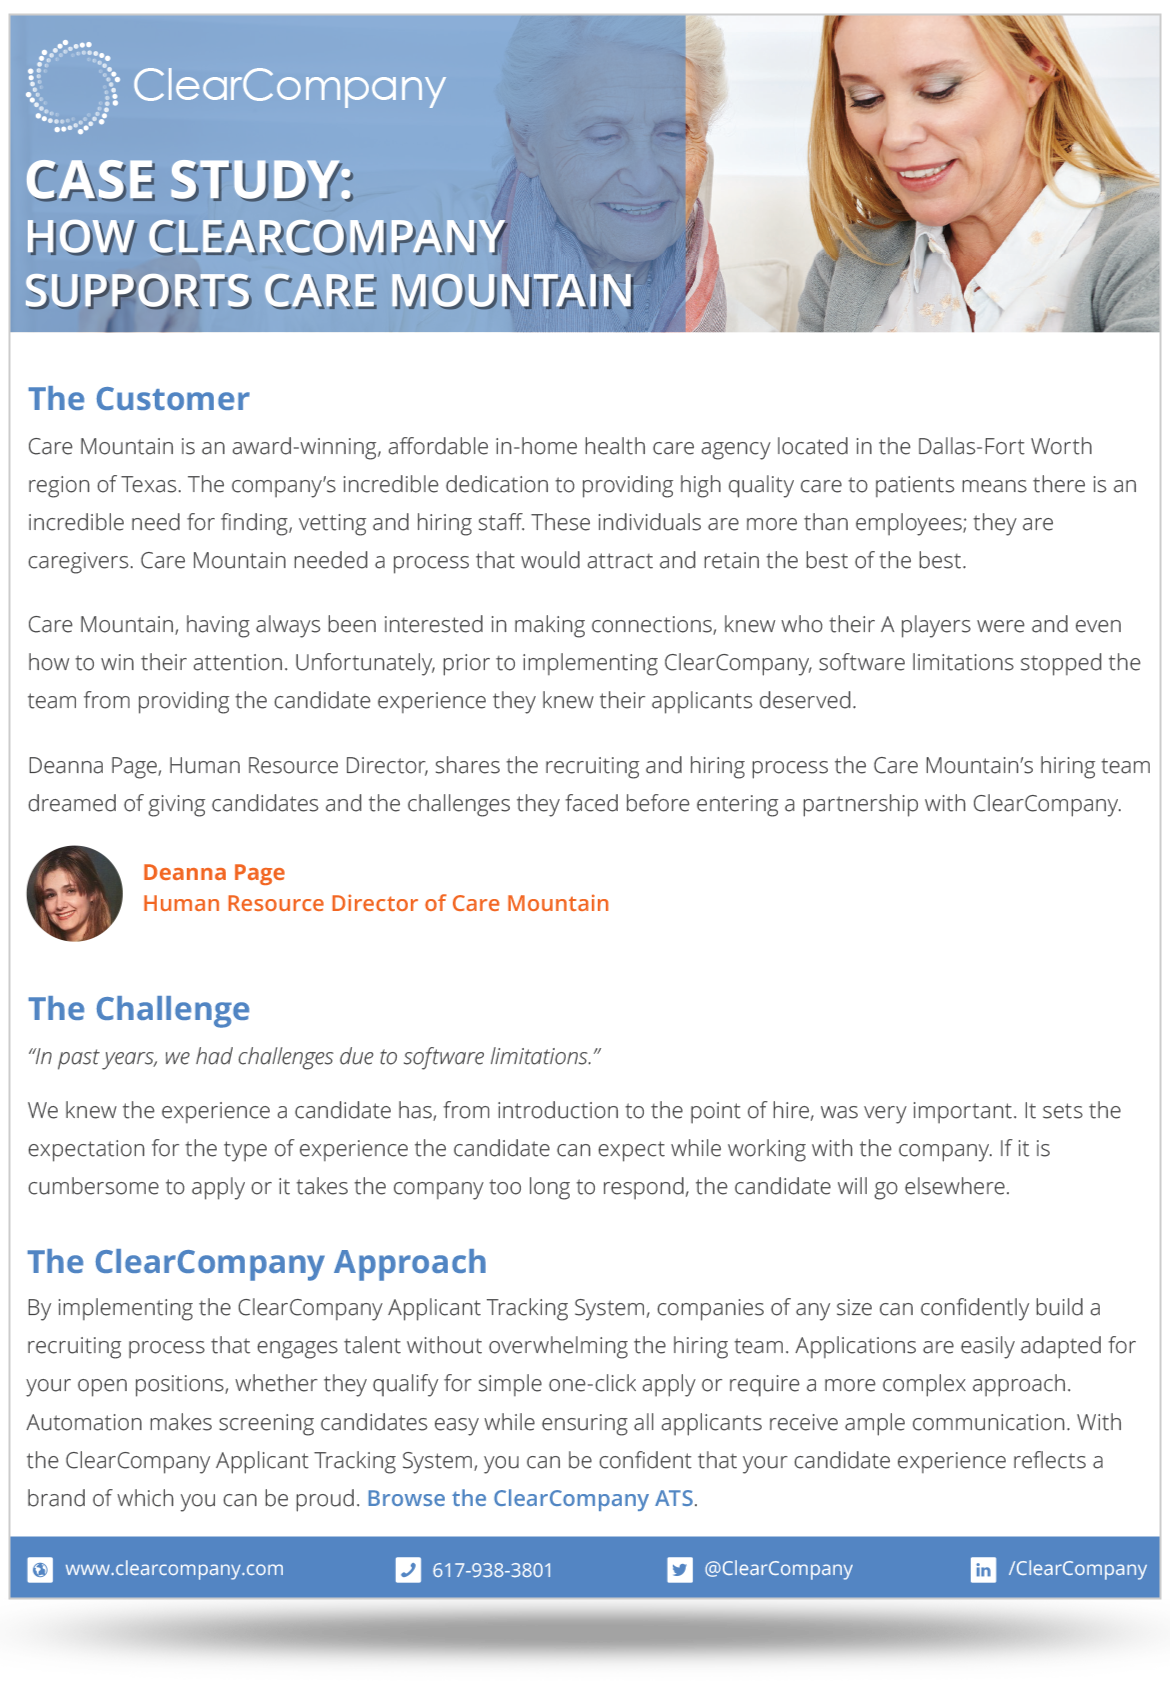 Talent Management Example of Care Mountain